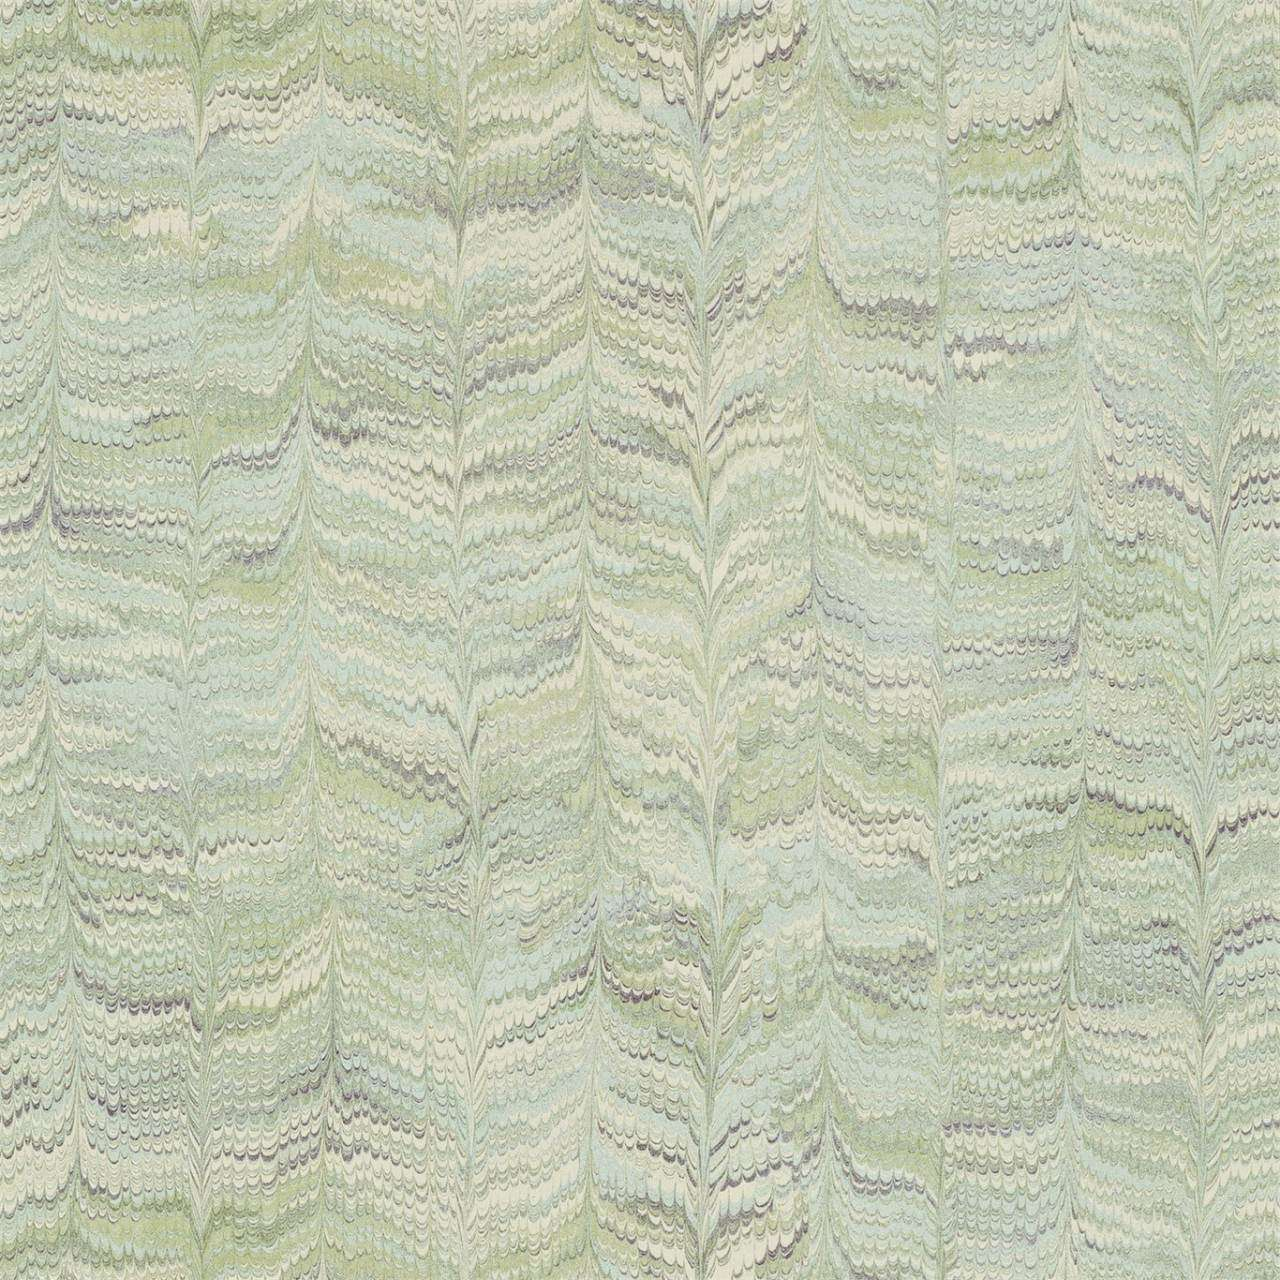 Jaipur Plain Jade behang Zoffany Selected wallpapers by OOSTENDORP